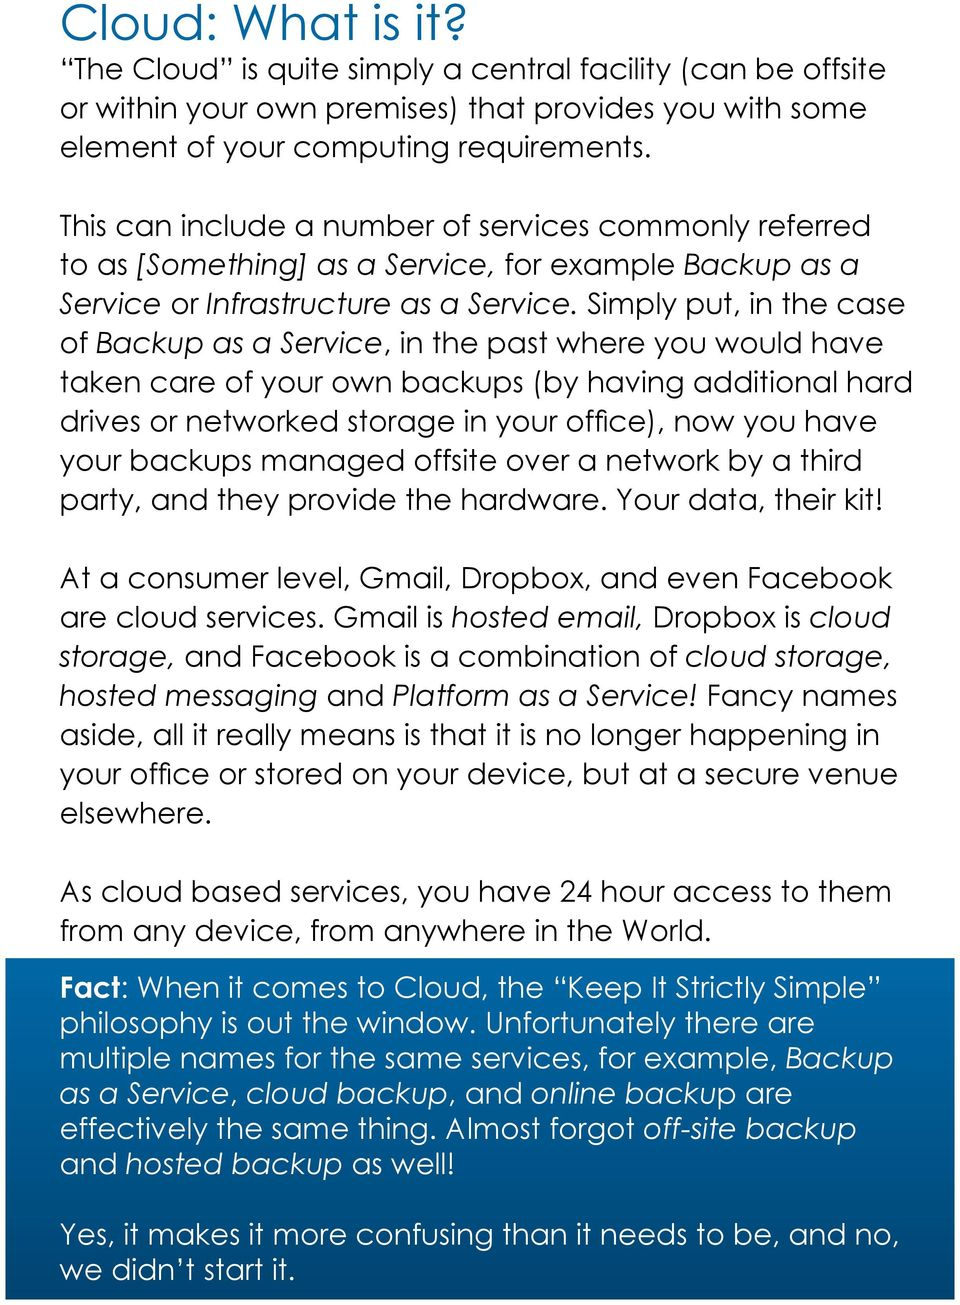 Simply put, in the case of Backup as a Service, in the past where you would have taken care of your own backups (by having additional hard drives or networked storage in your office), now you have